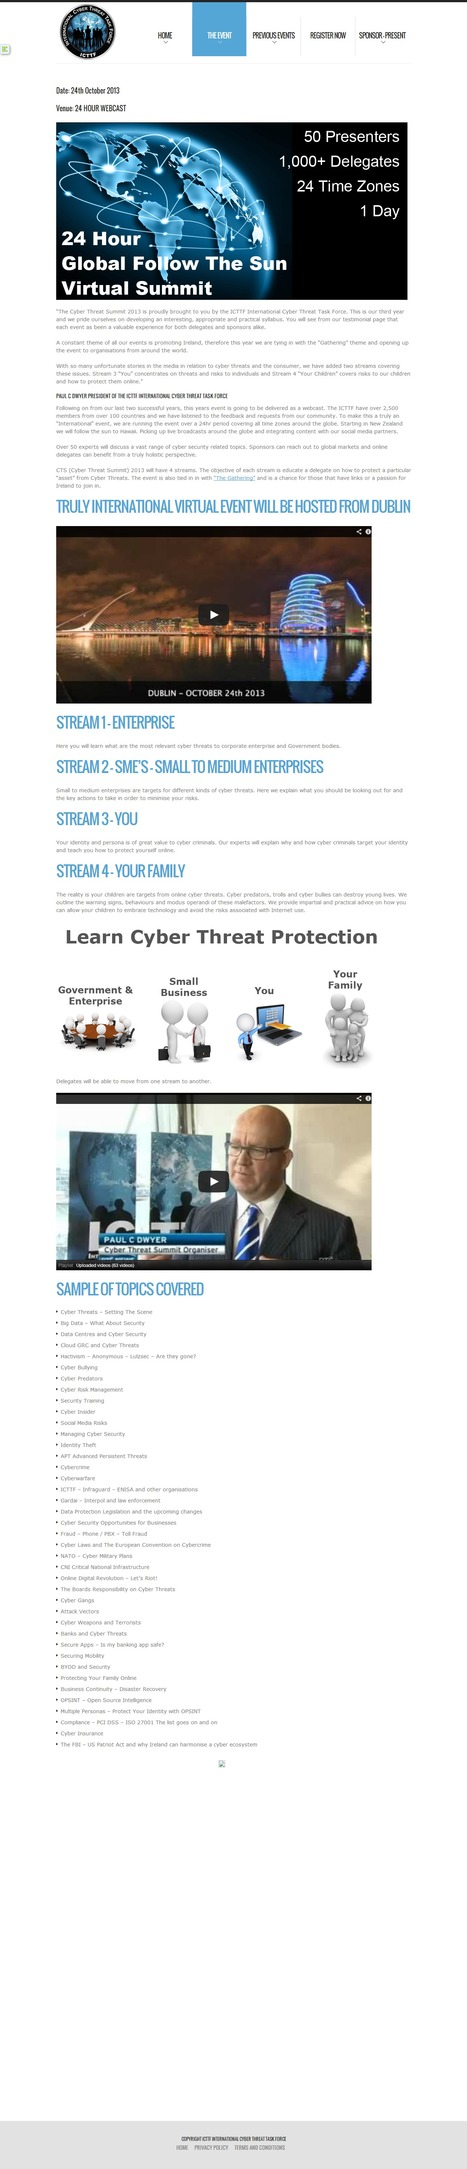 The Event – Cyber Threat Summit 2013 | CYBER THREAT SUMMIT | Cyber Defence | Scoop.it